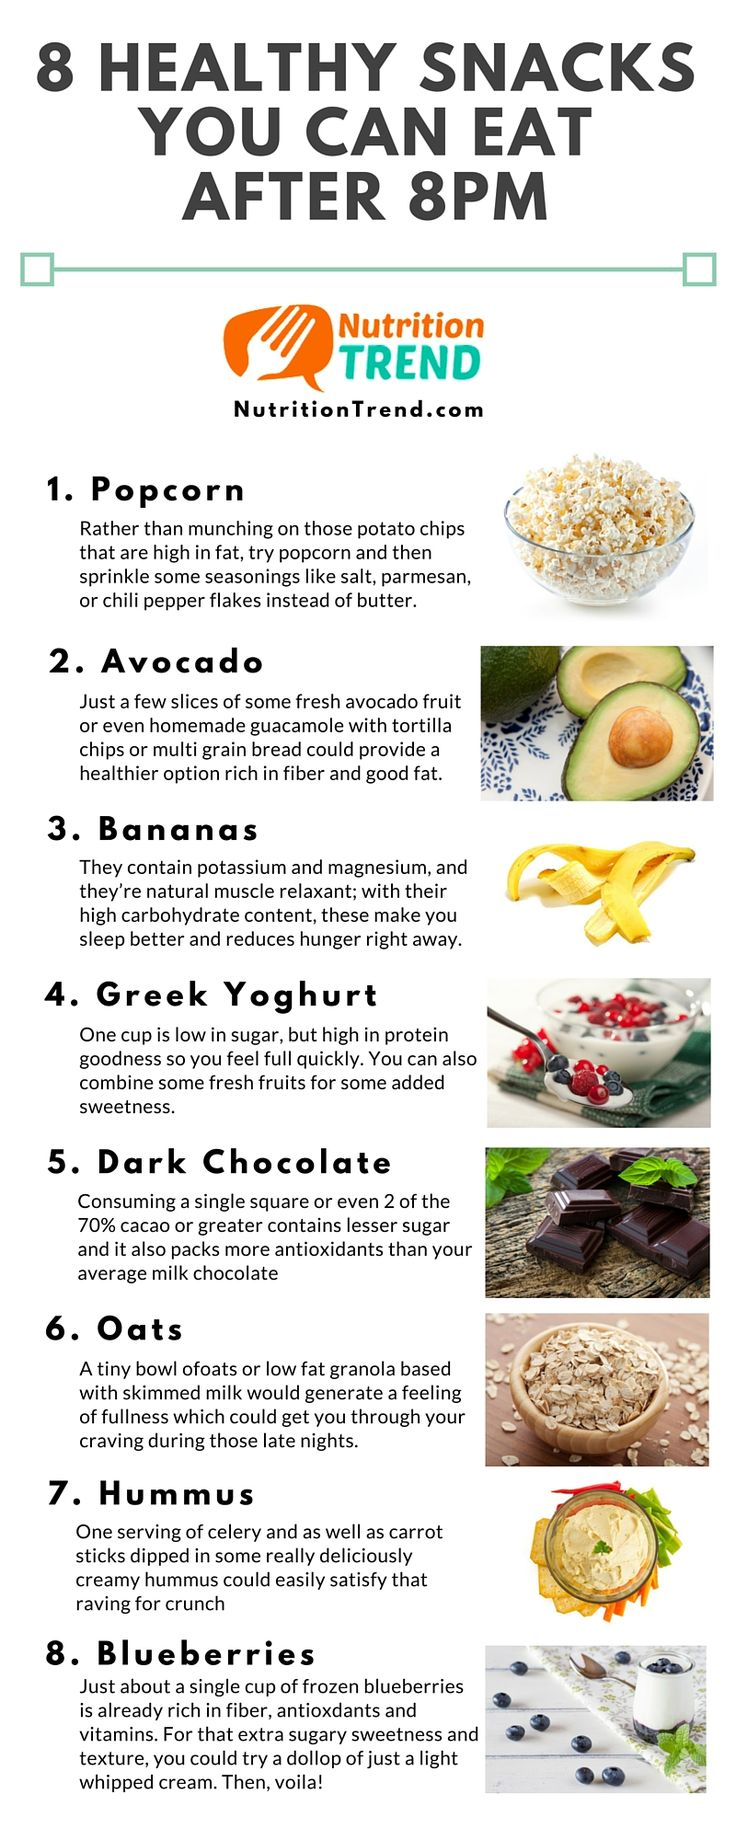 8 Quick, Healthy Late Night Snacks That Won't Go Straight to Your Hips! #Arbonne